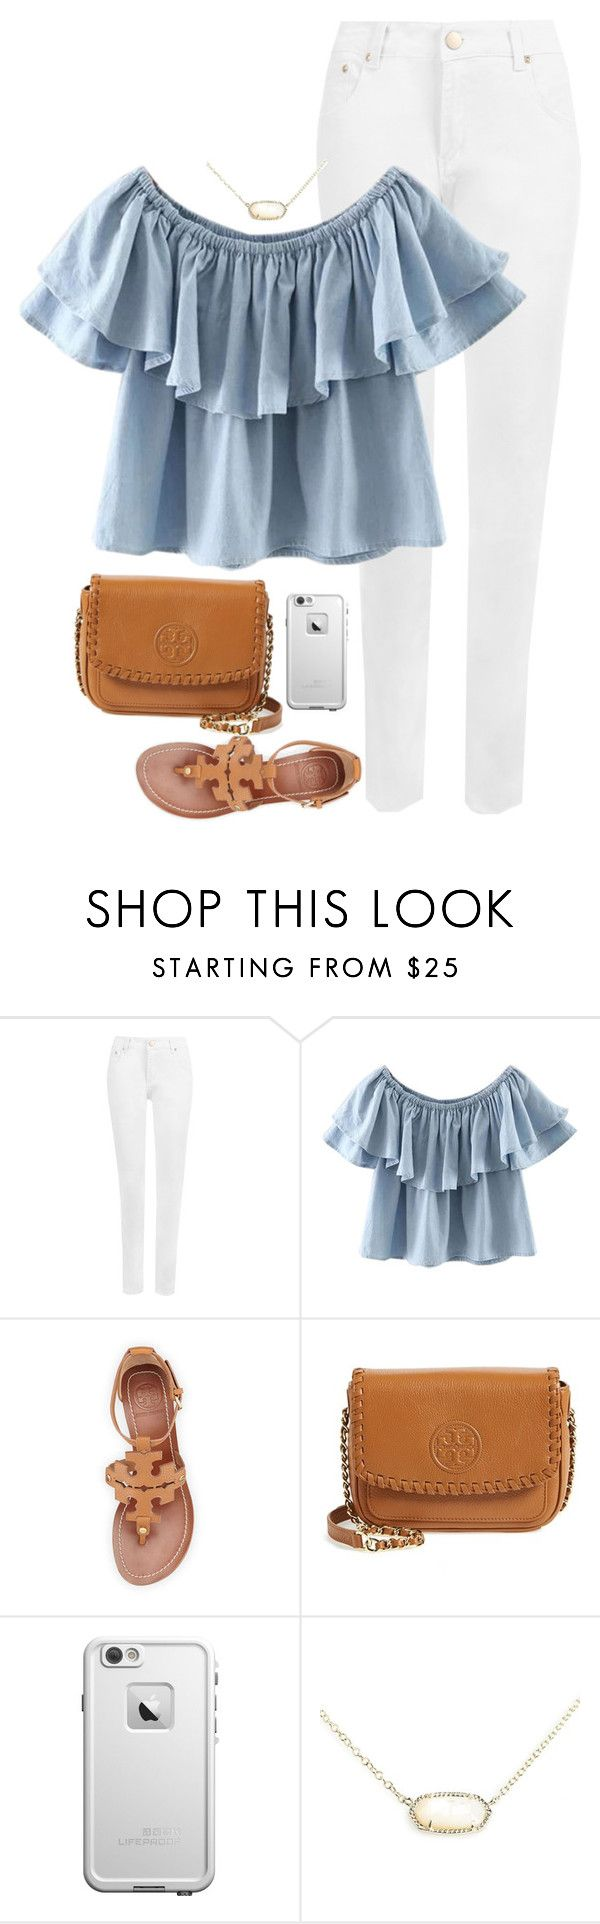 """1st day of school today"" by apemb ❤ liked on Polyvore featuring WearAll, WithChic, Tory Burch, LifeProof and Kendra Scott"